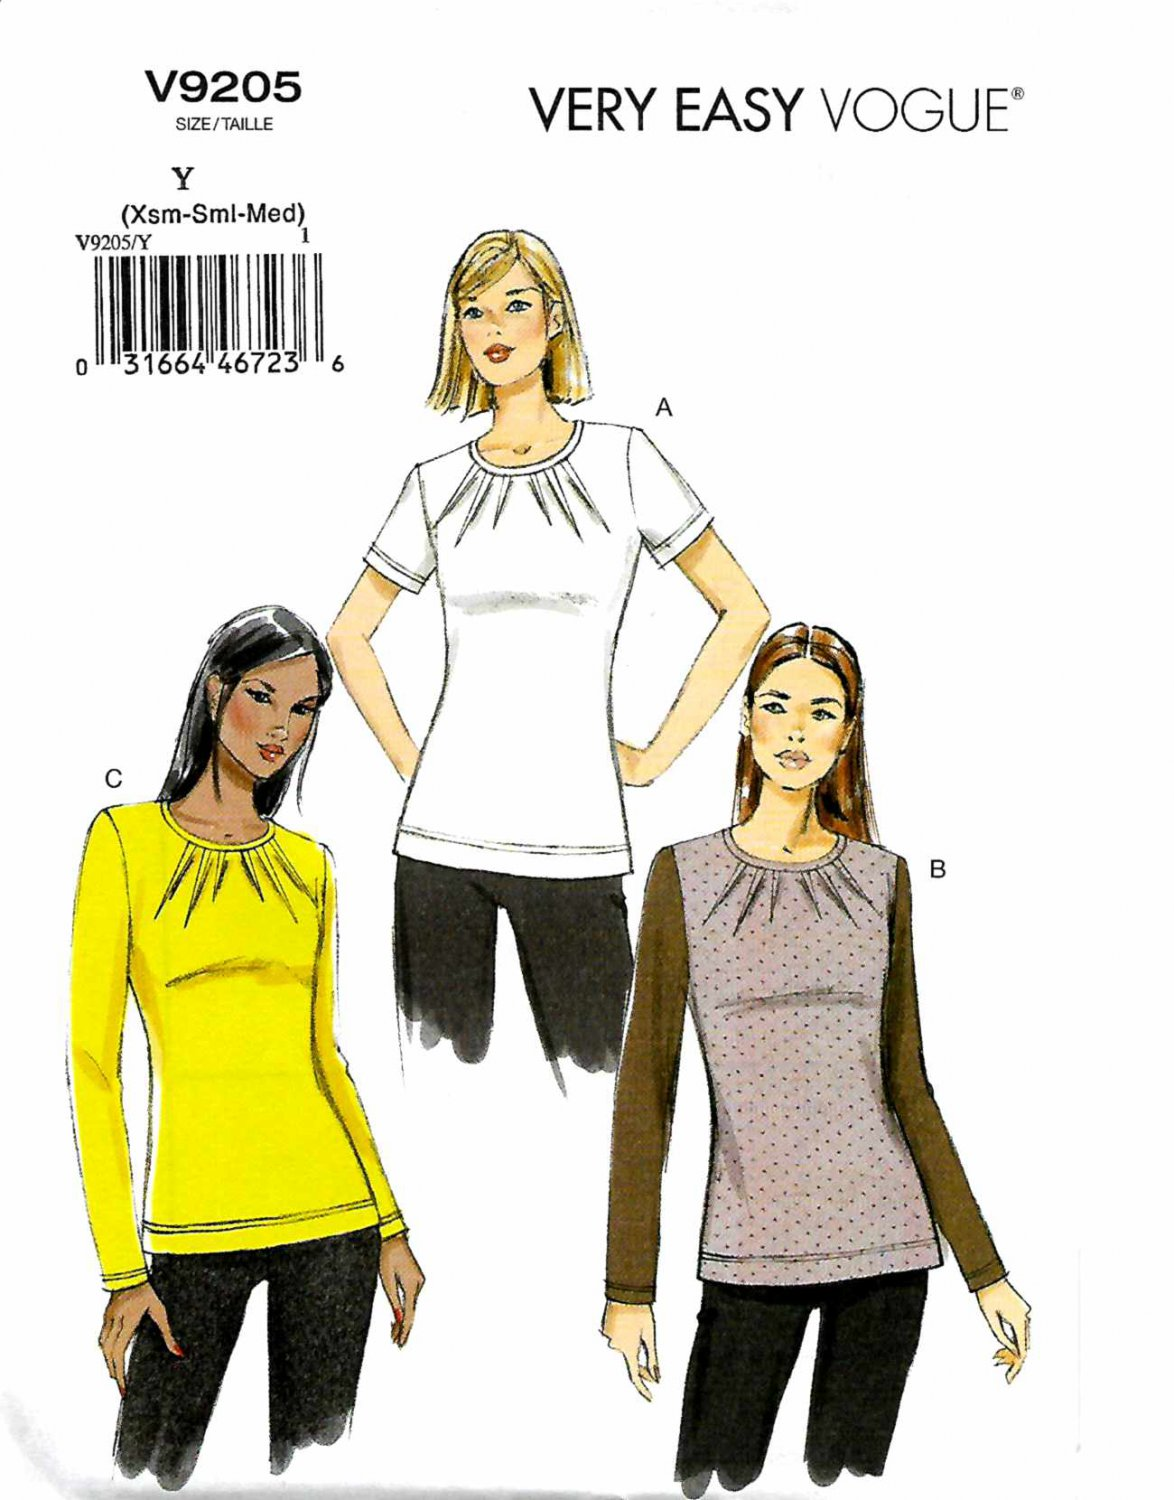 Vogue Sewing Pattern 9205 V9205 Misses Sizes 4-14 Easy Knit Pullover Tops